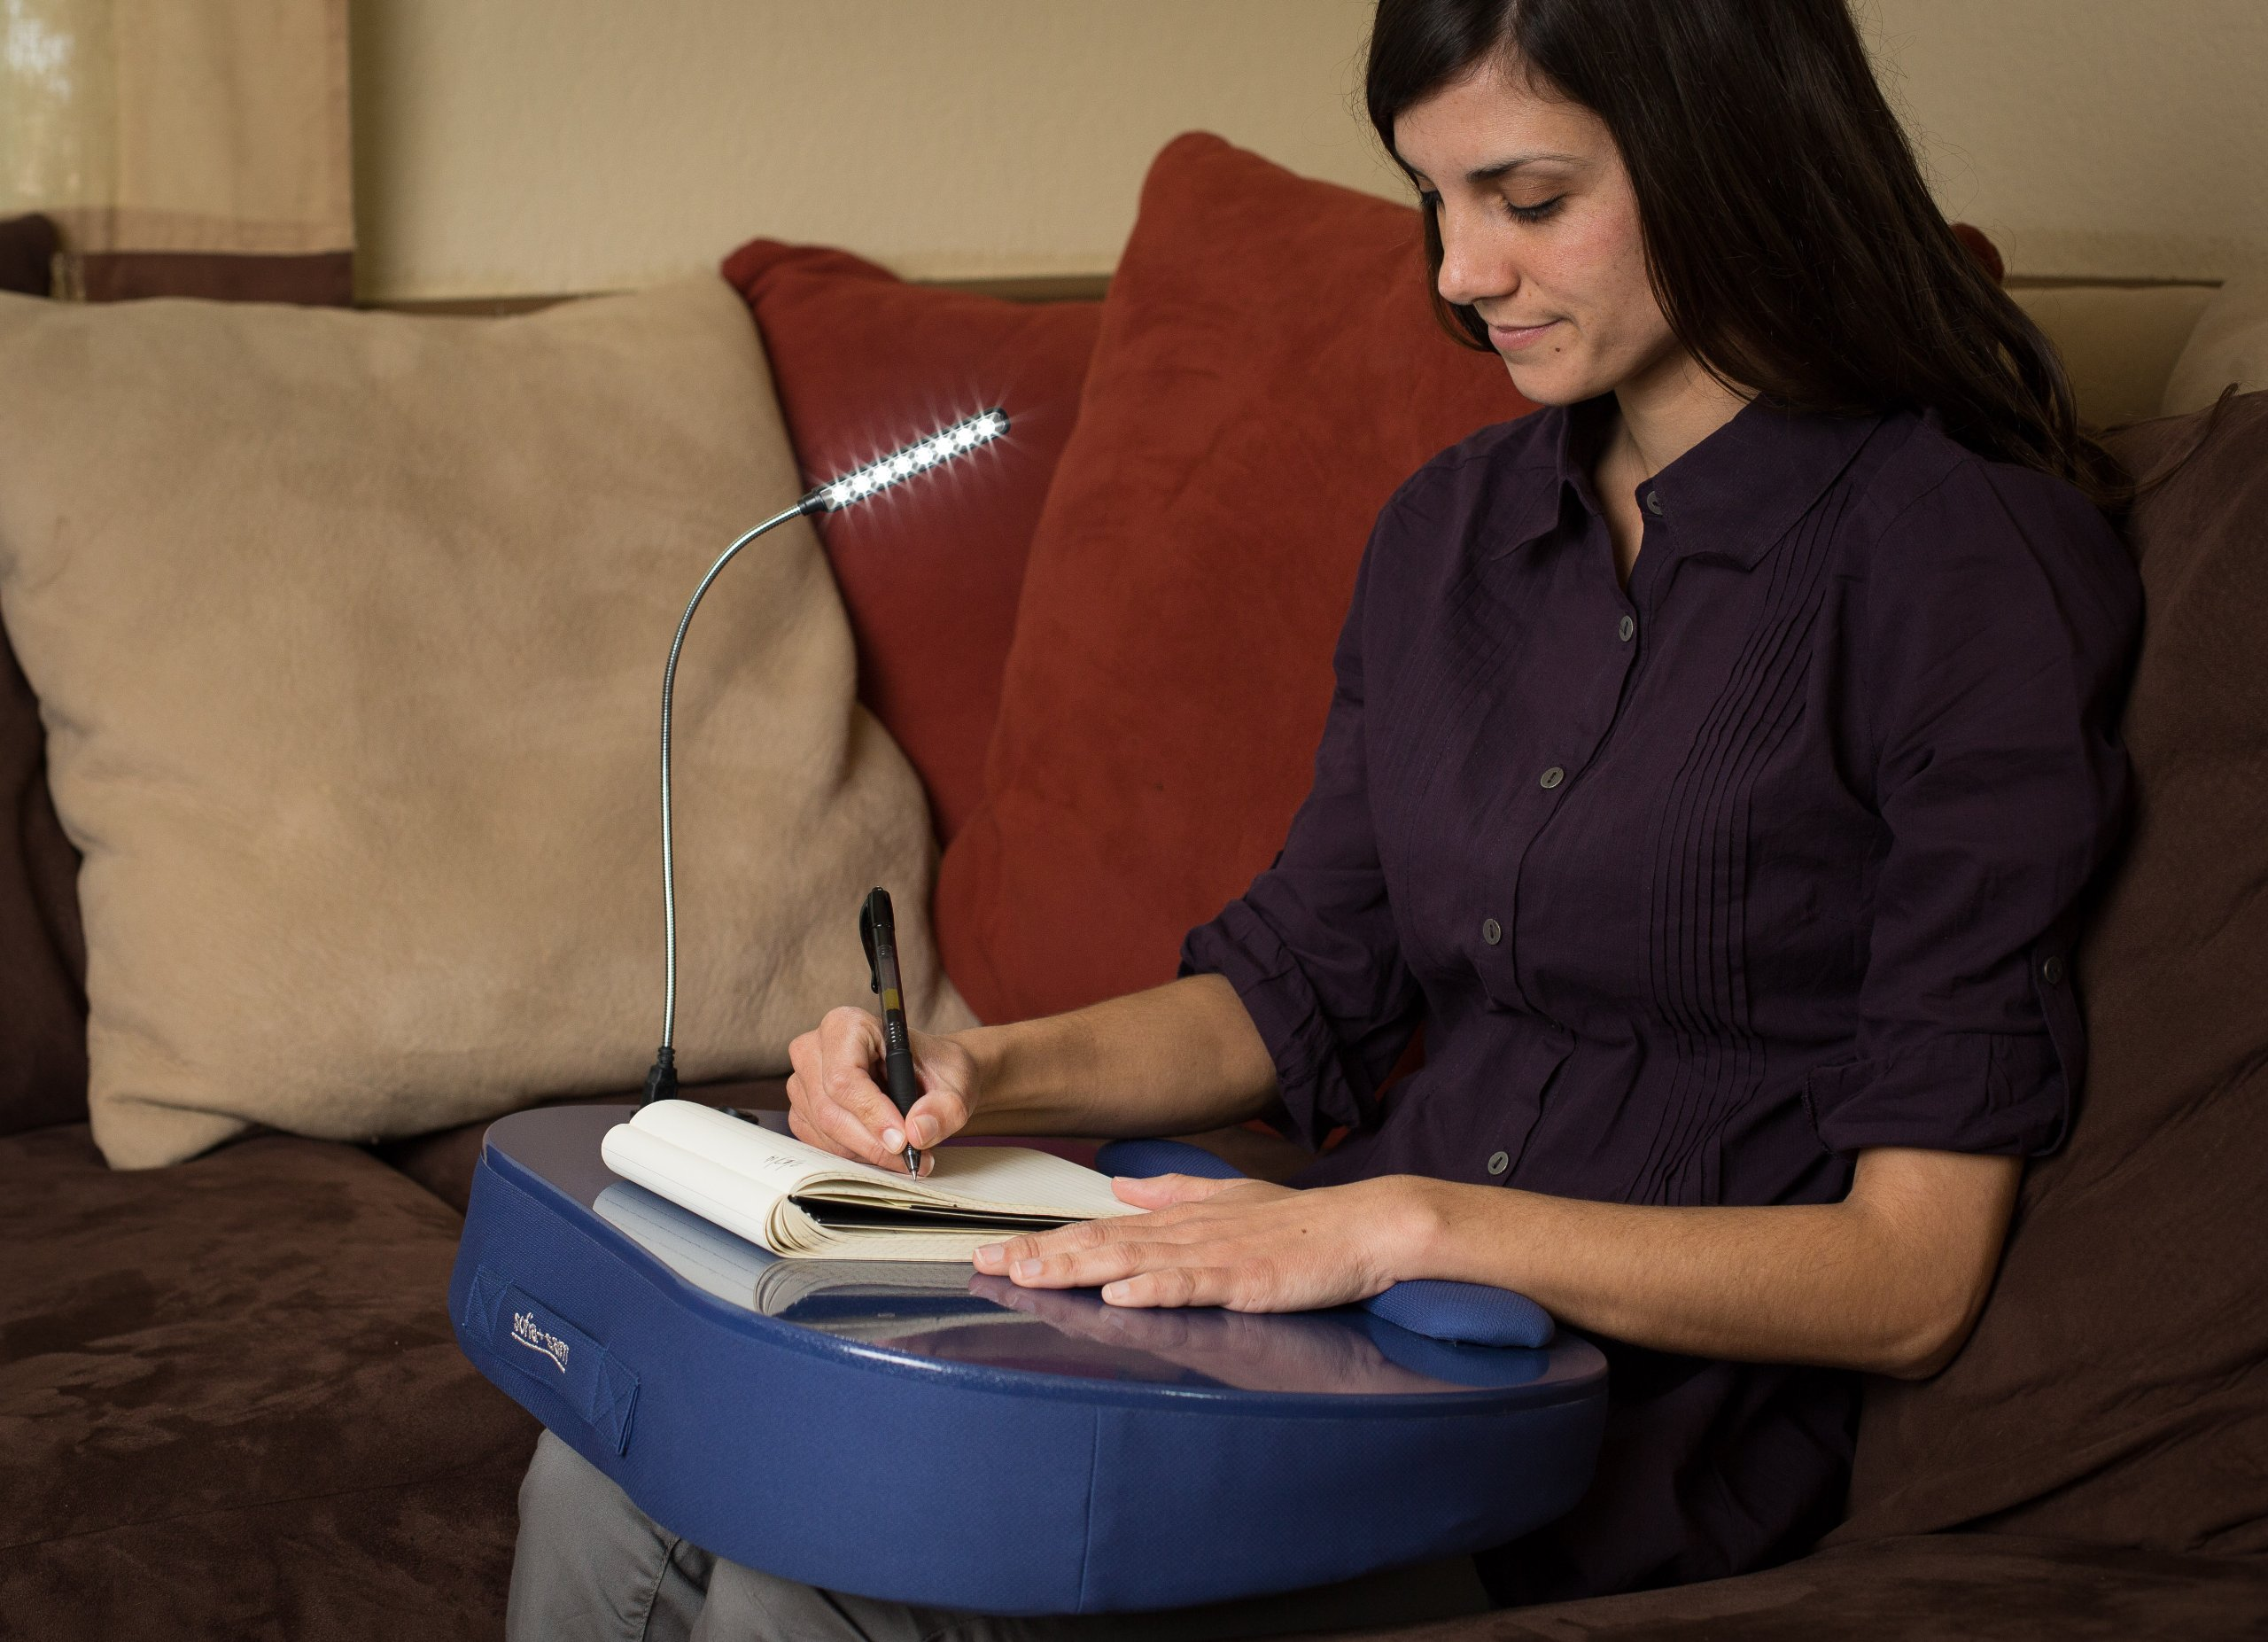 Sofia + Sam Round Lap Desk with Detachable USB Light (Blue) | Memory Foam Cushion | Supports Laptops Up To 18 Inches by Sofia + Sam